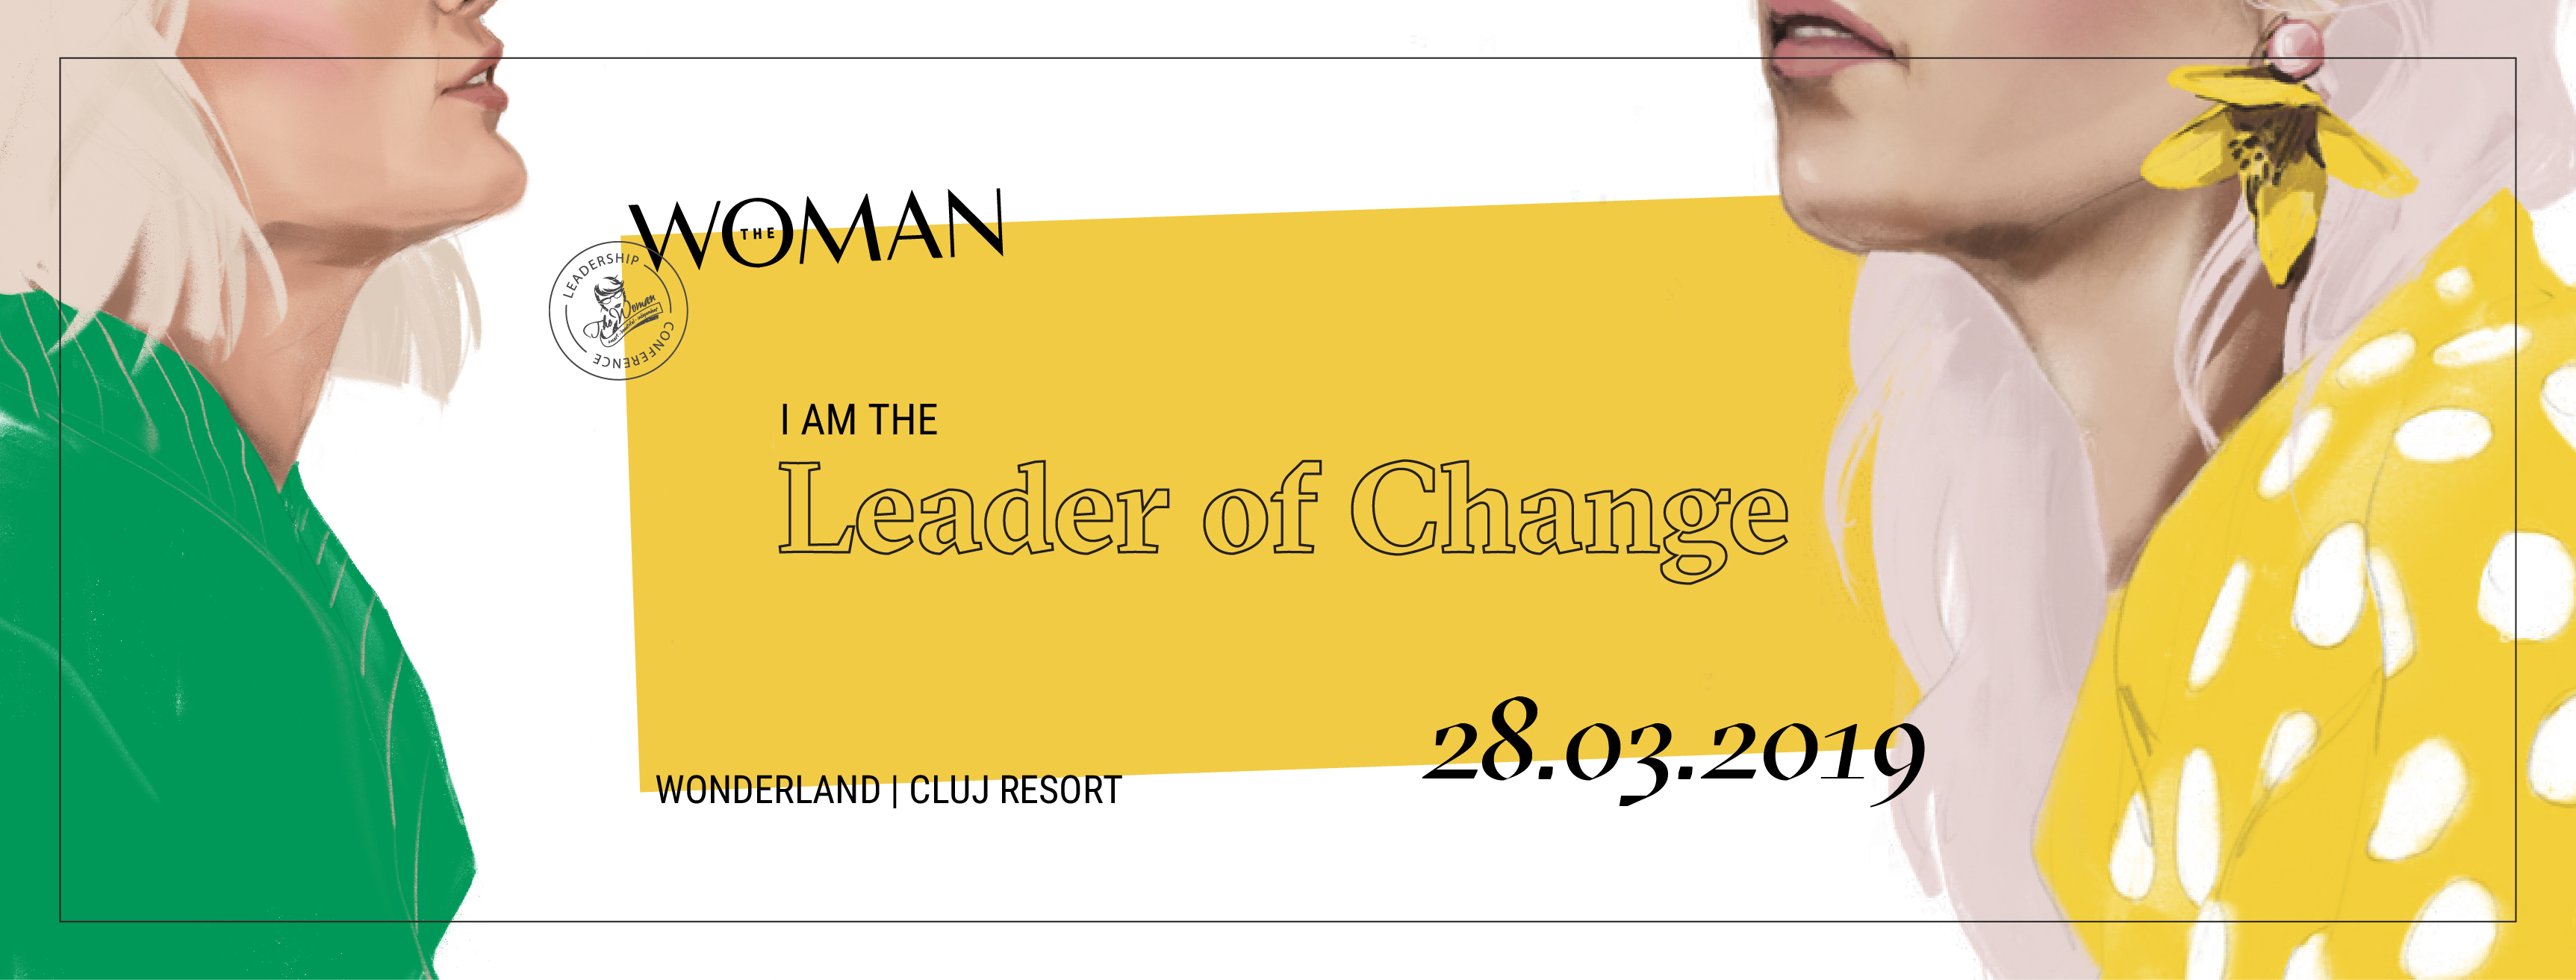 I am the leader of change - The Woman